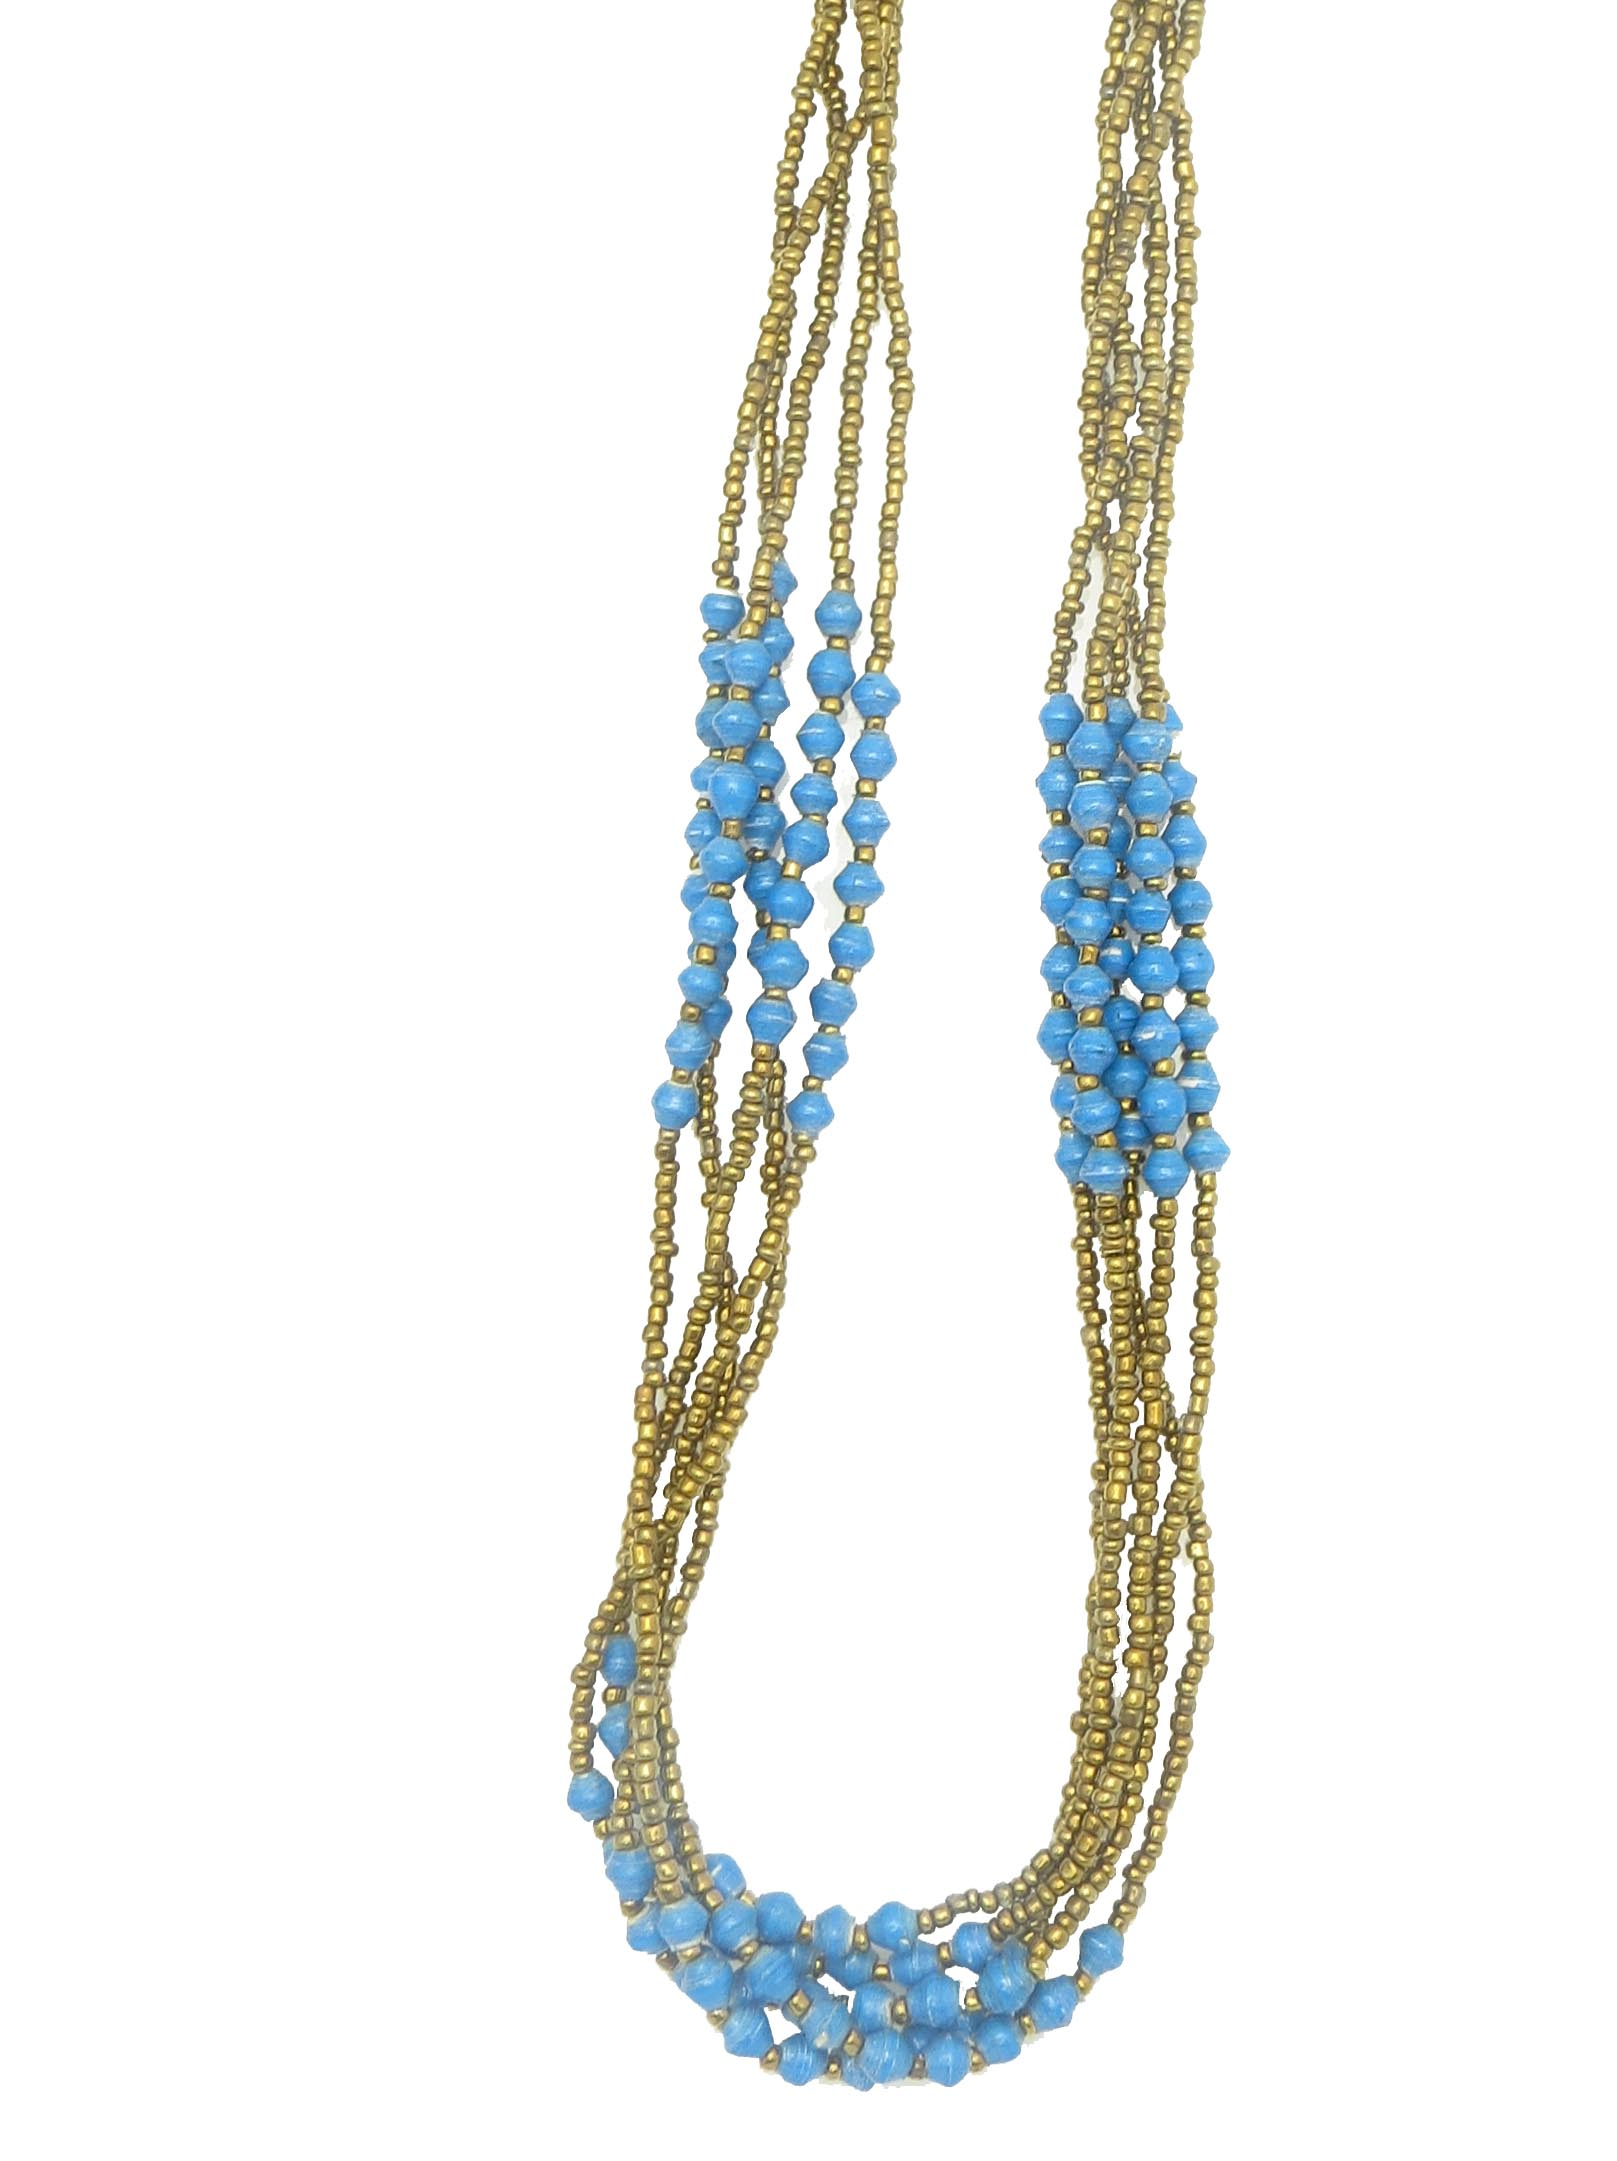 Specialty gold and turquoise necklace